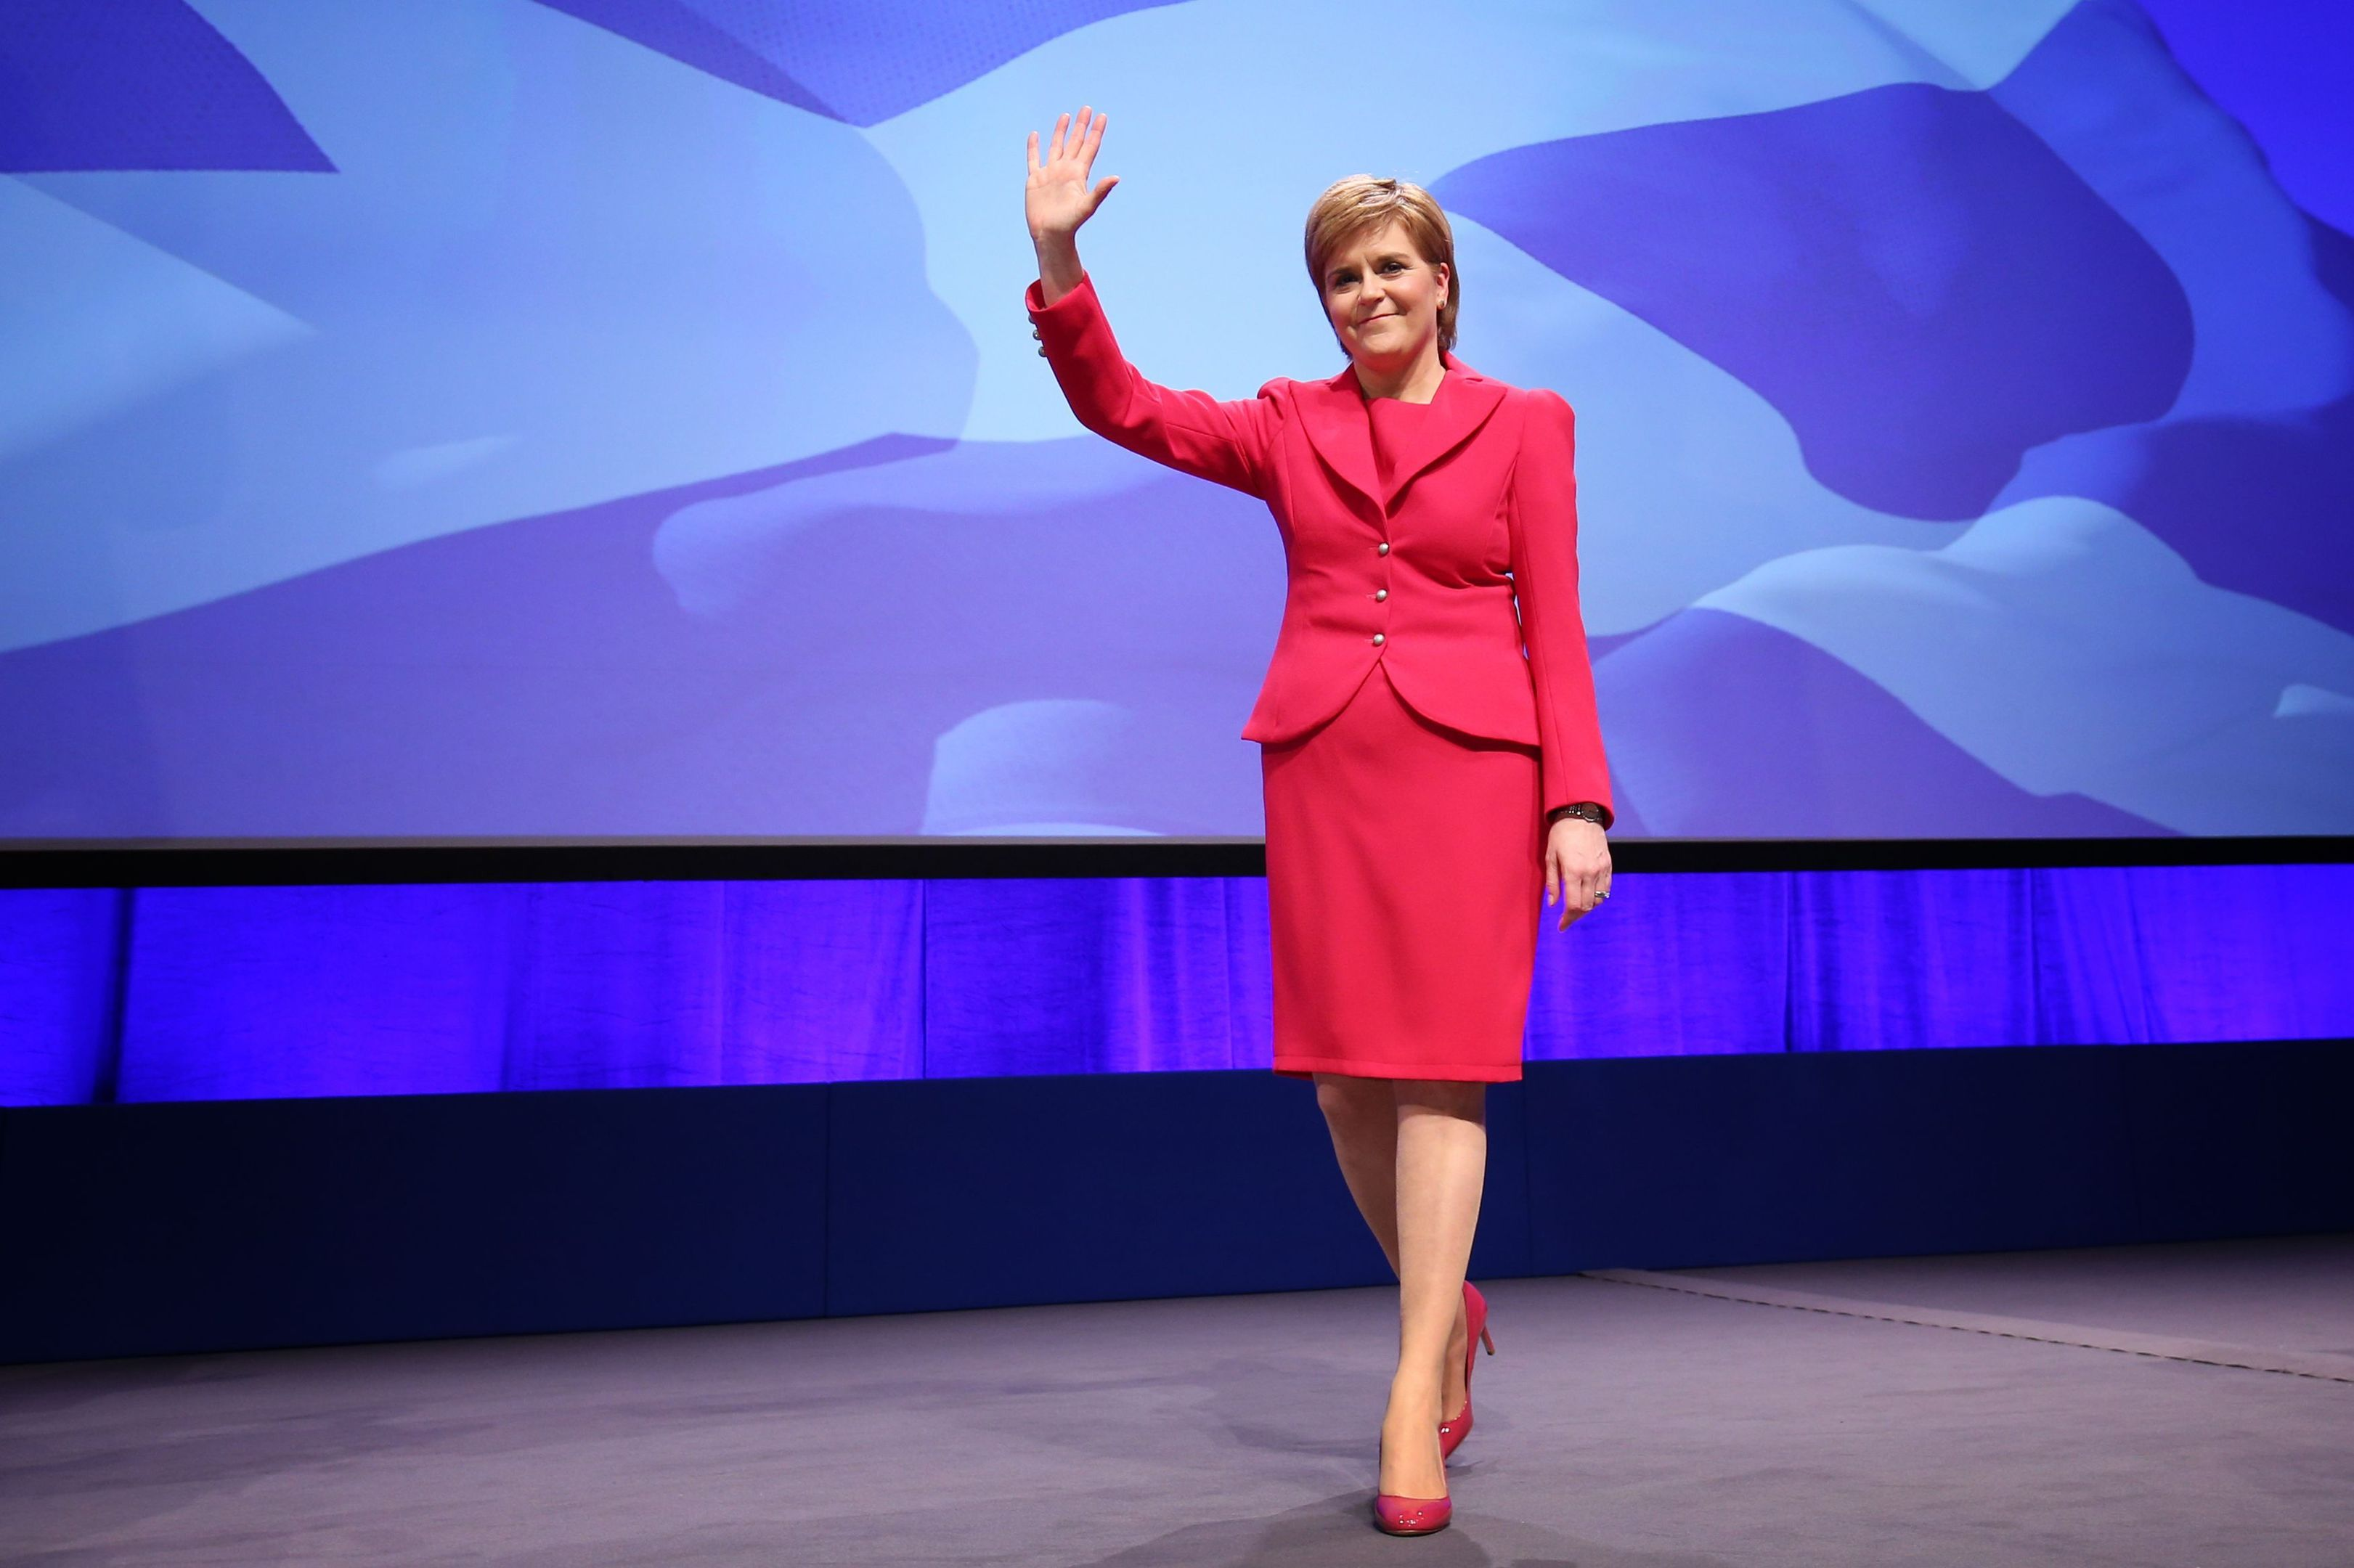 Nicola Sturgeon after giving her address at the SNP conference in Glasgow.